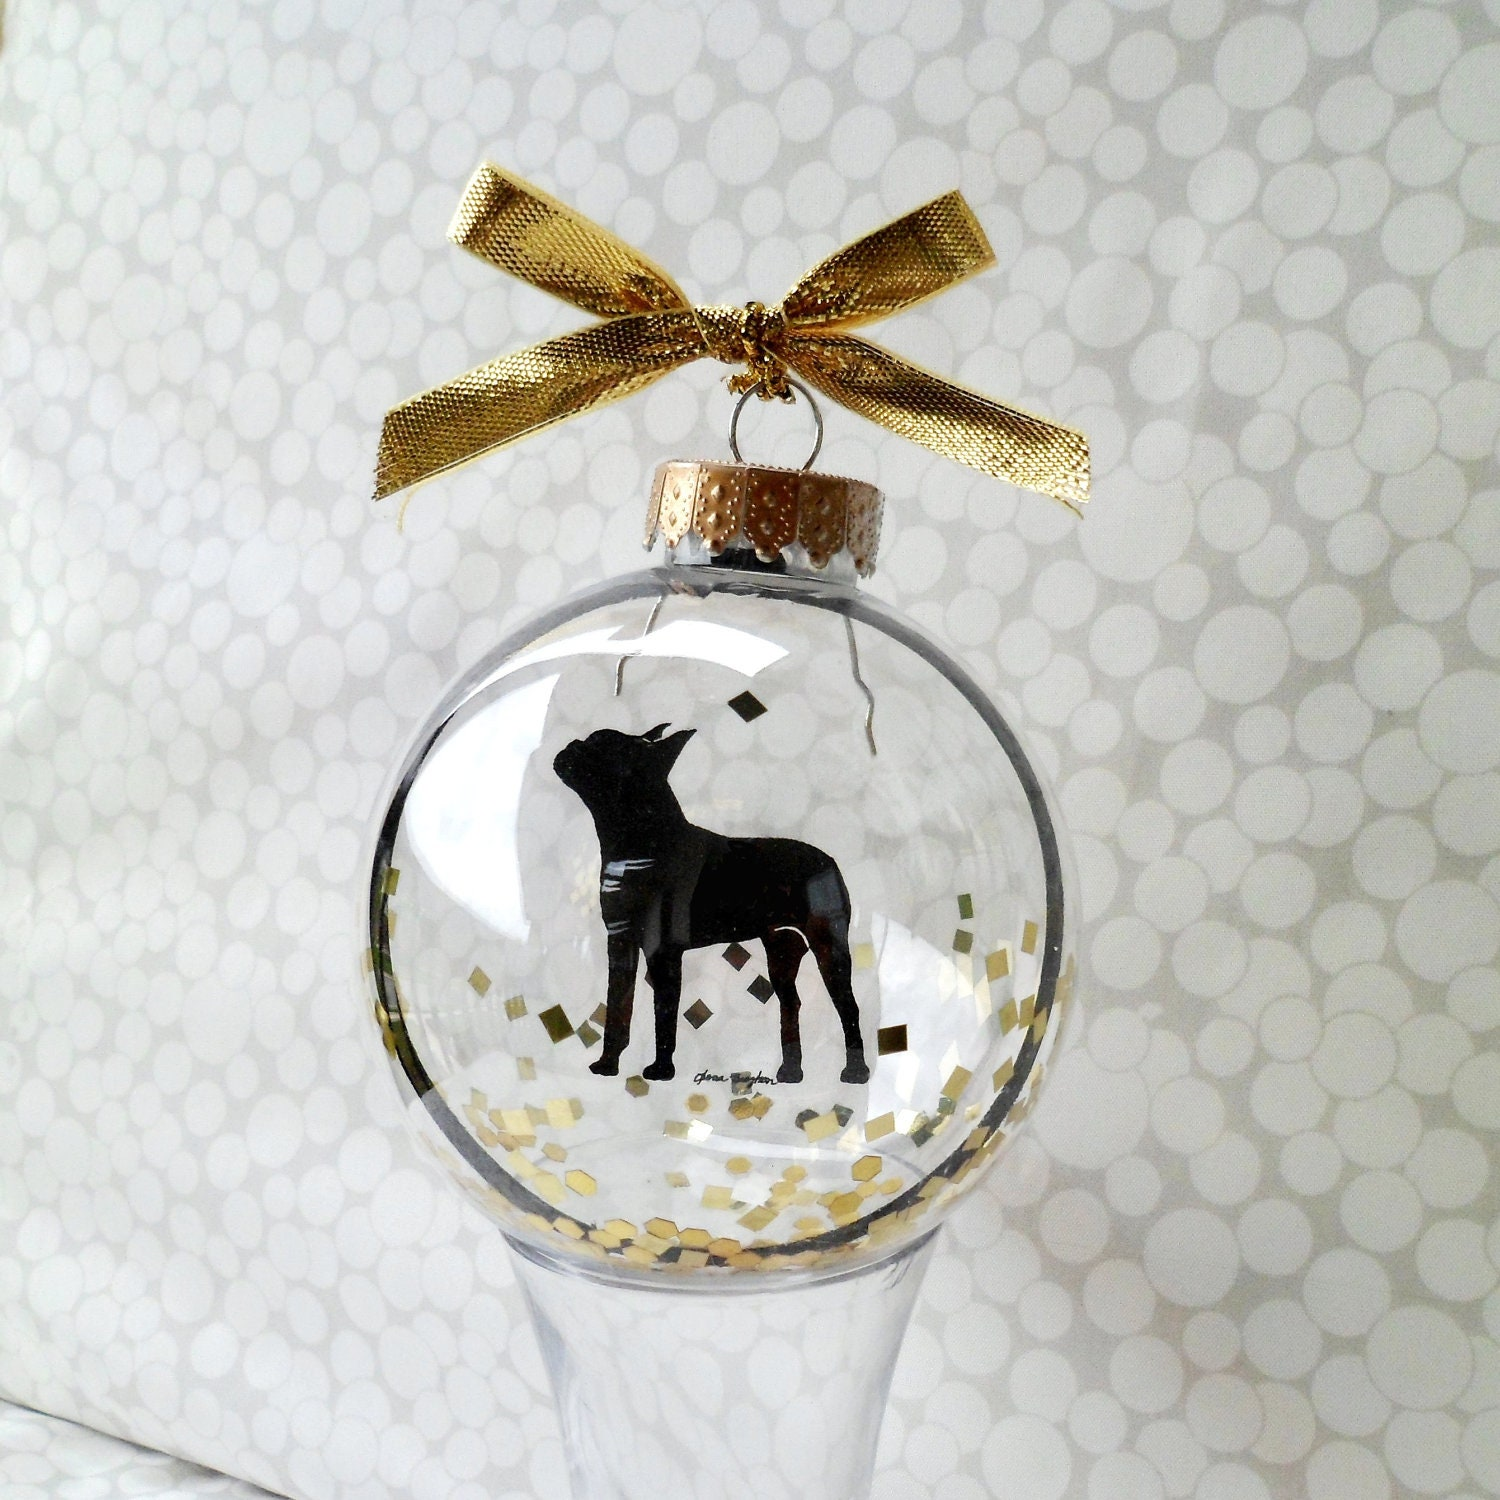 Boston Terrier/Pet ornament